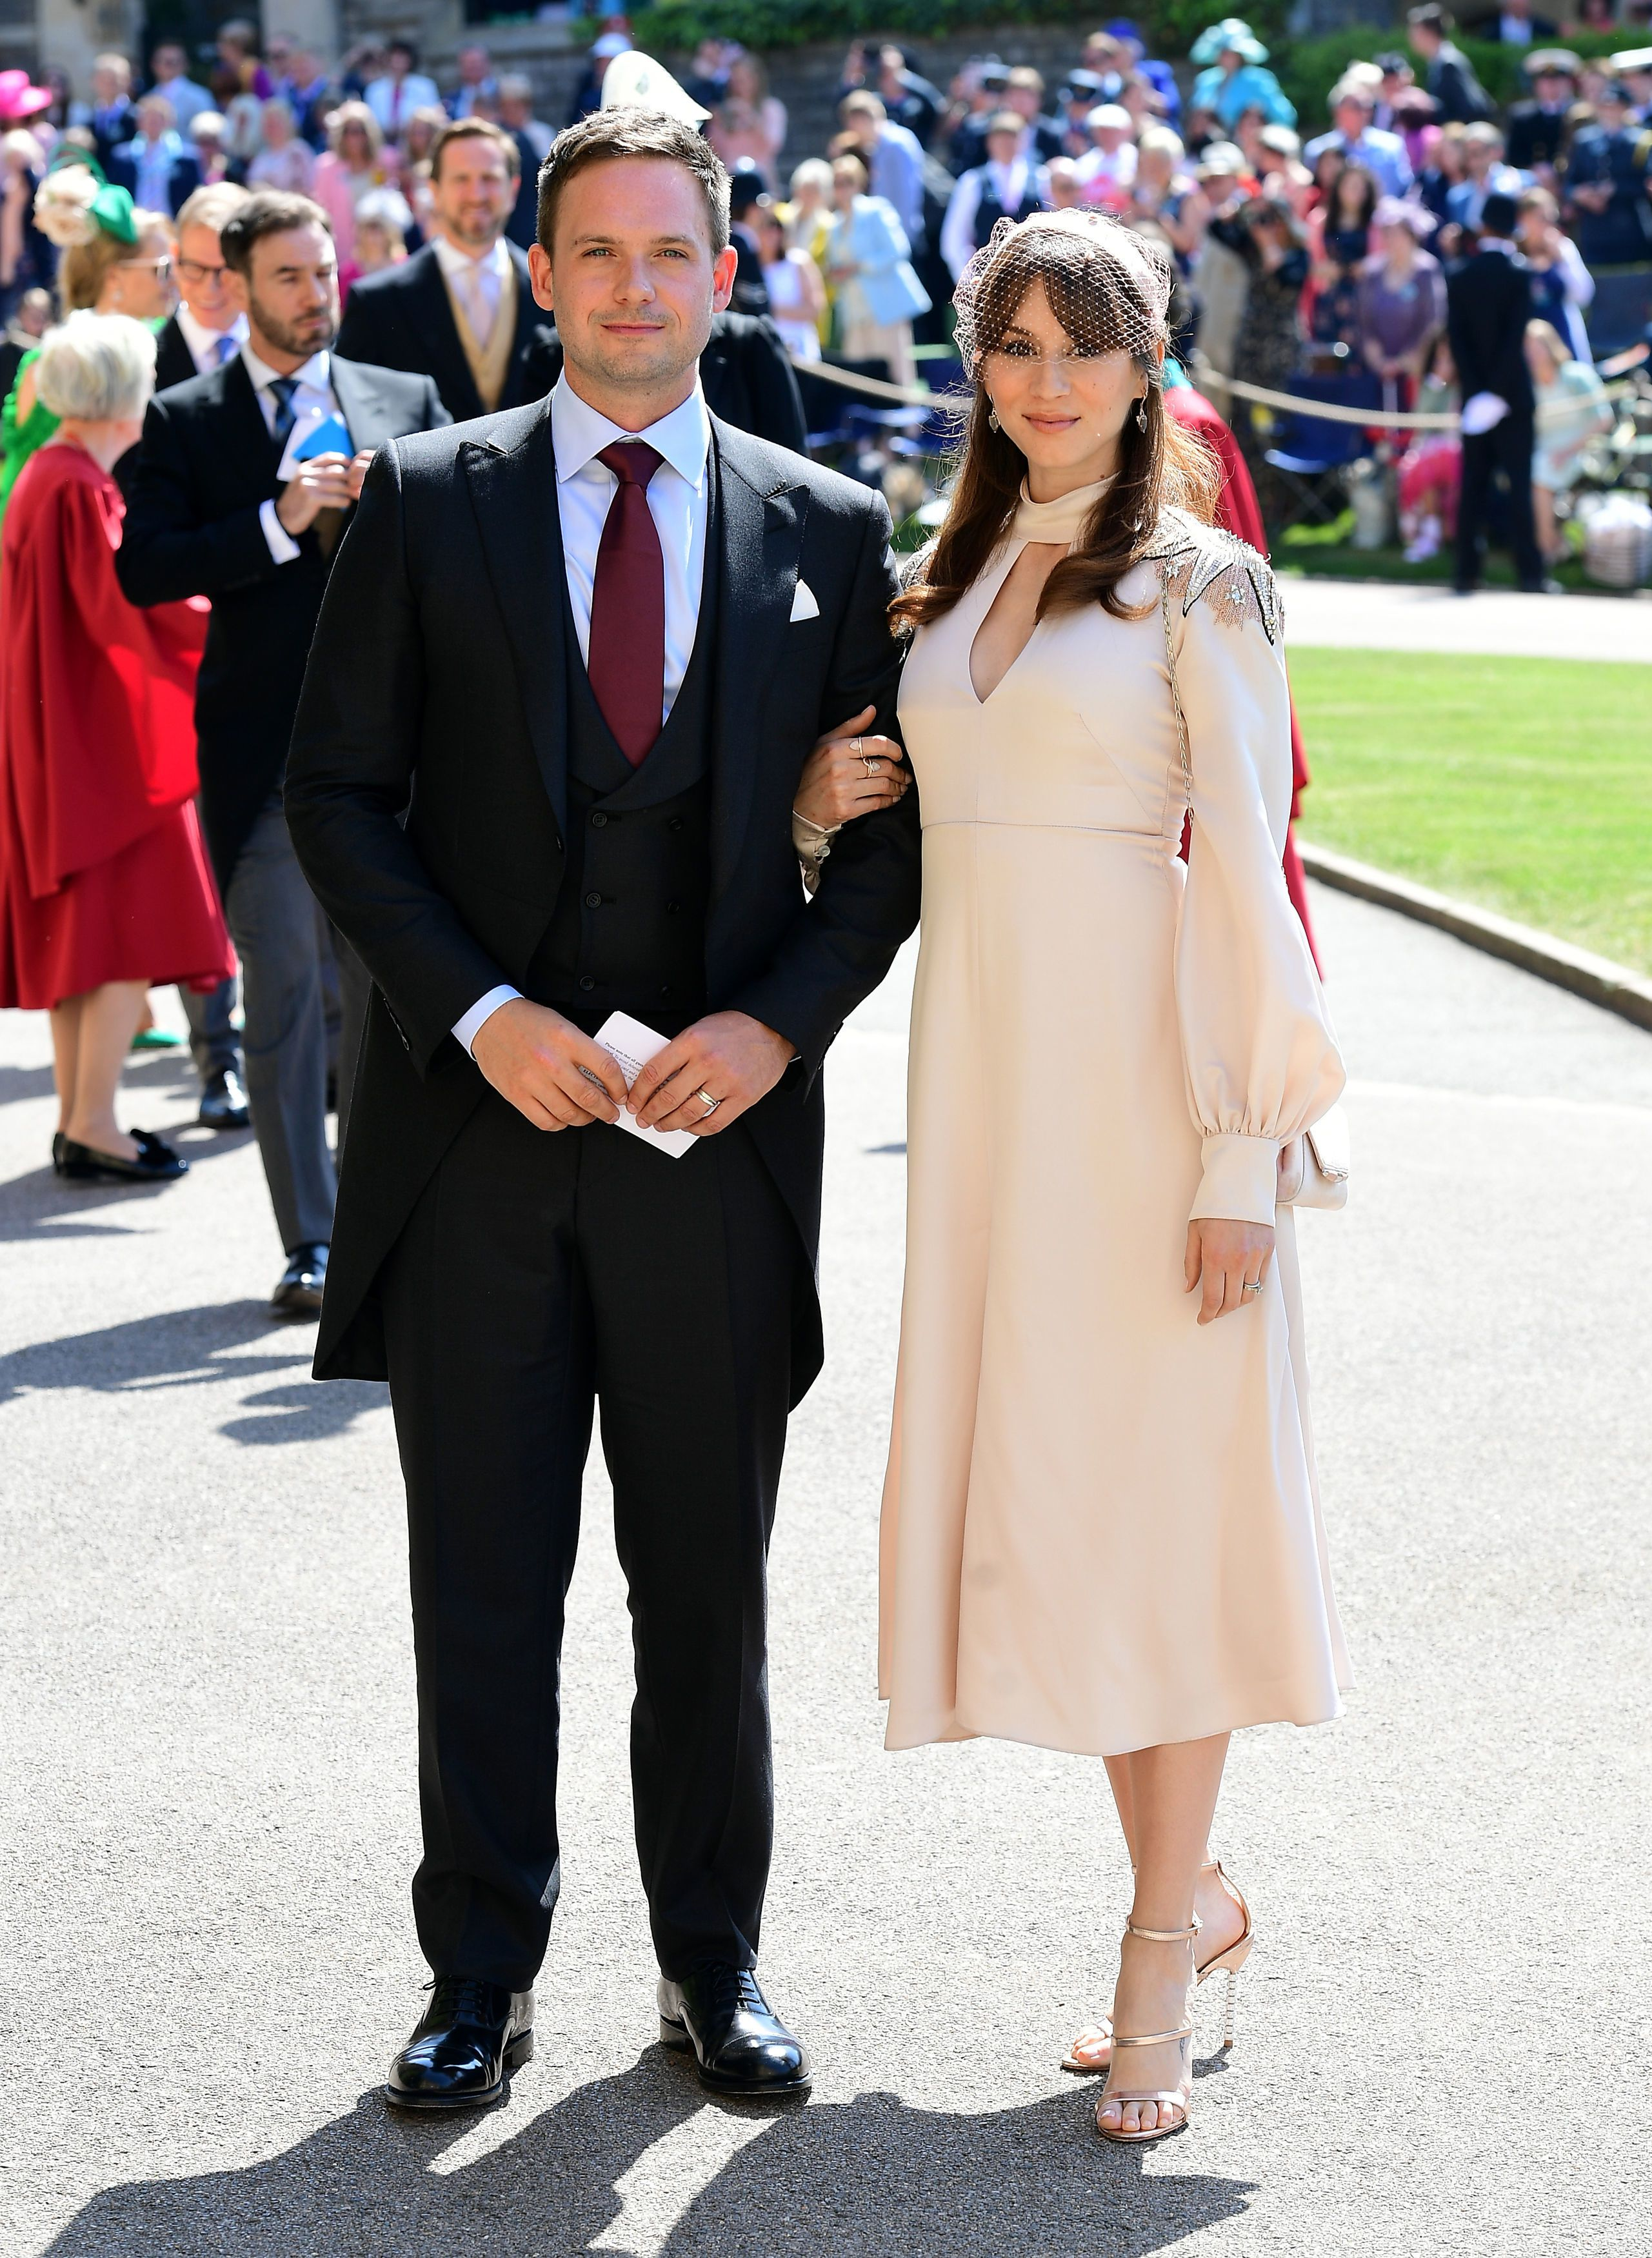 photos of the suits cast at the royal wedding photos of patrick adams rick hoffman royal wedding photos of the suits cast at the royal